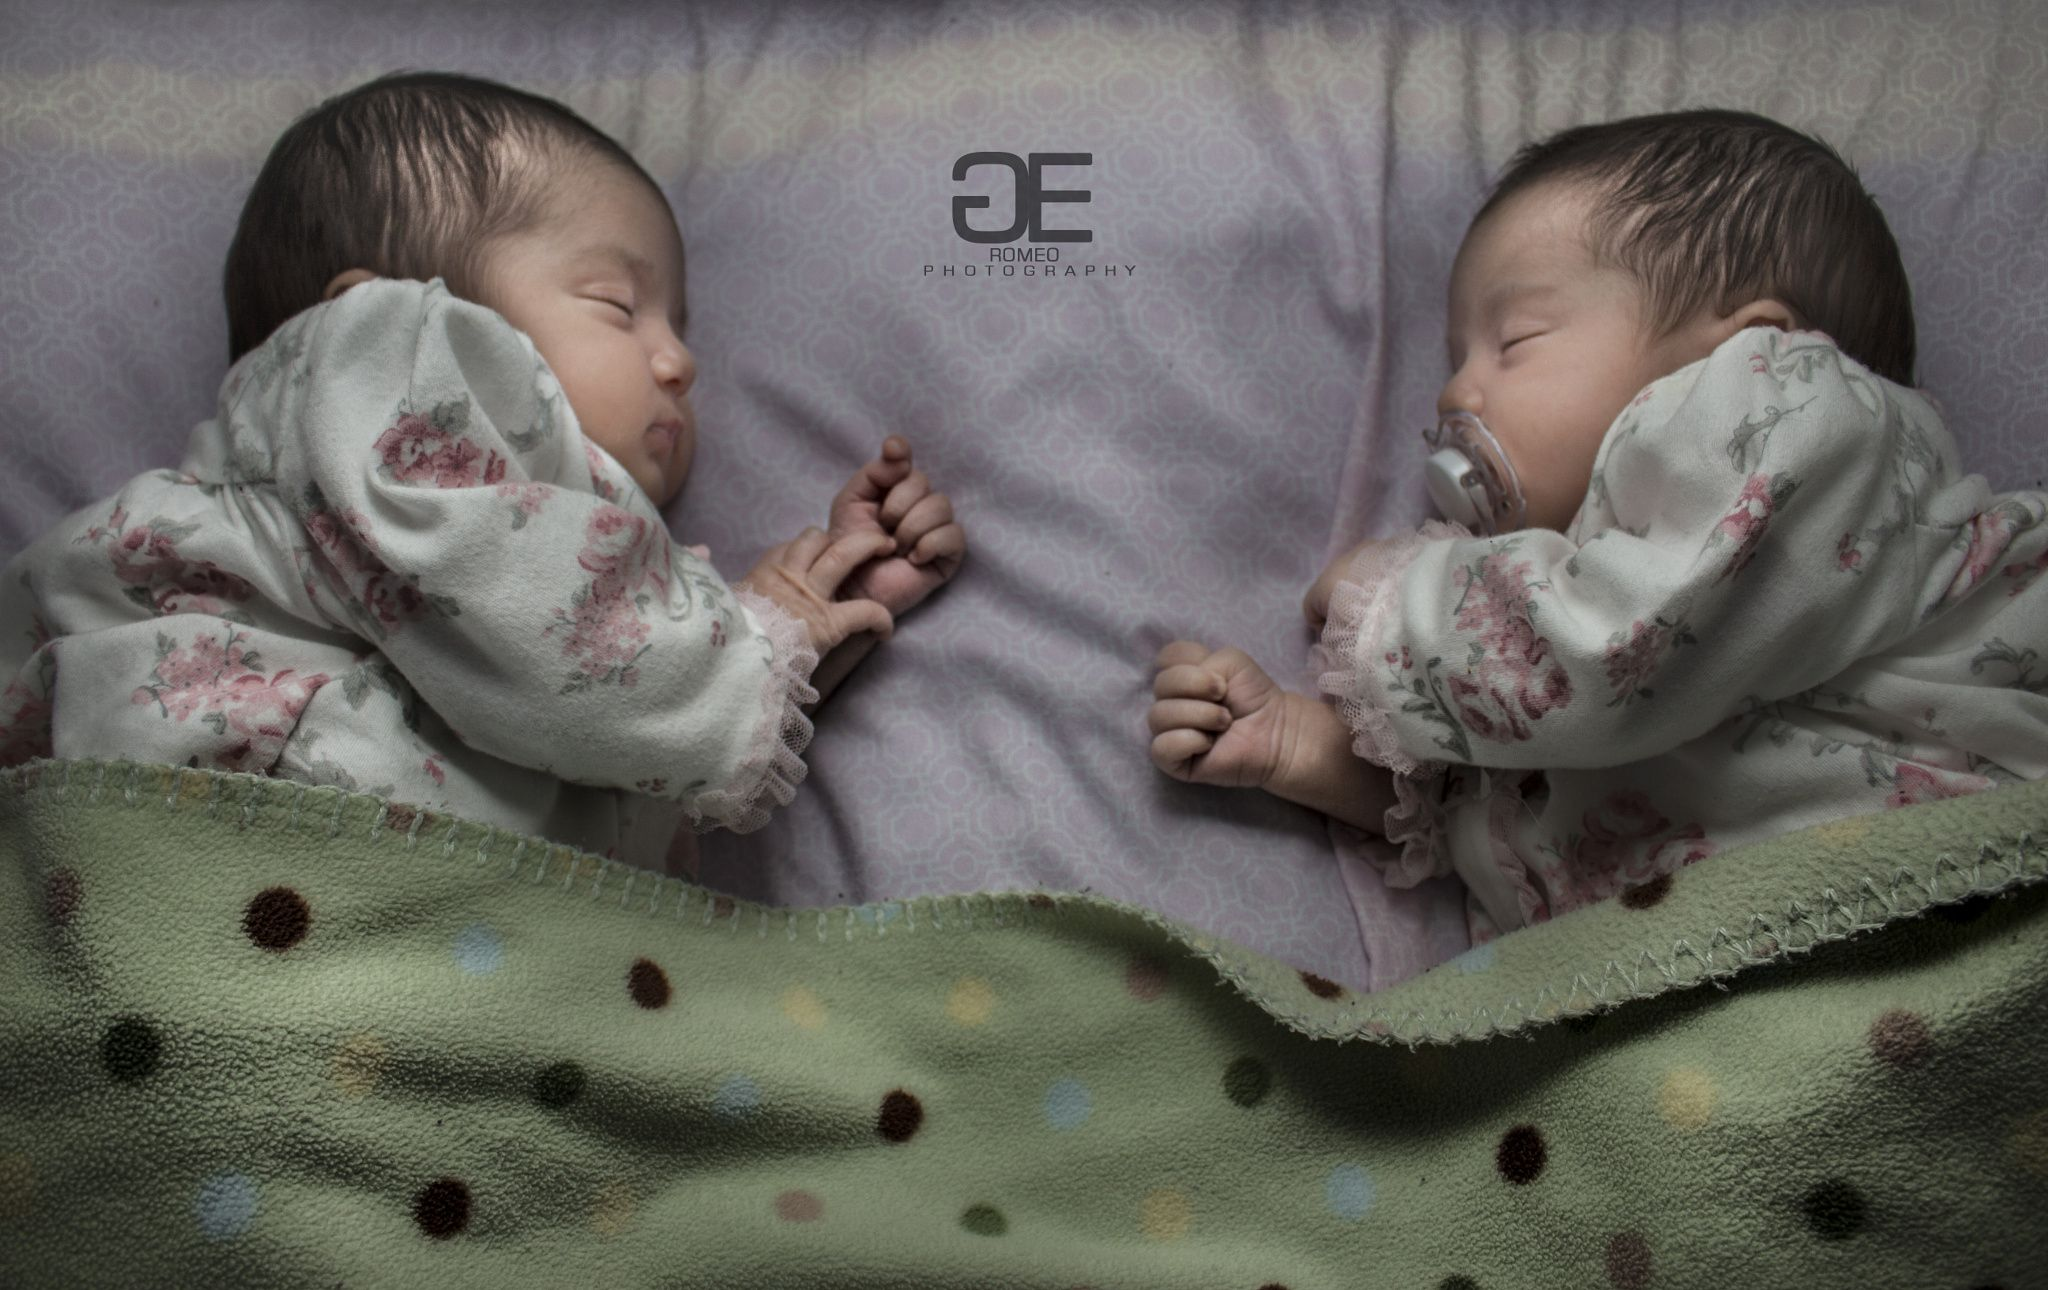 My twin girls #Twins  picture by brother EGON ROMEO